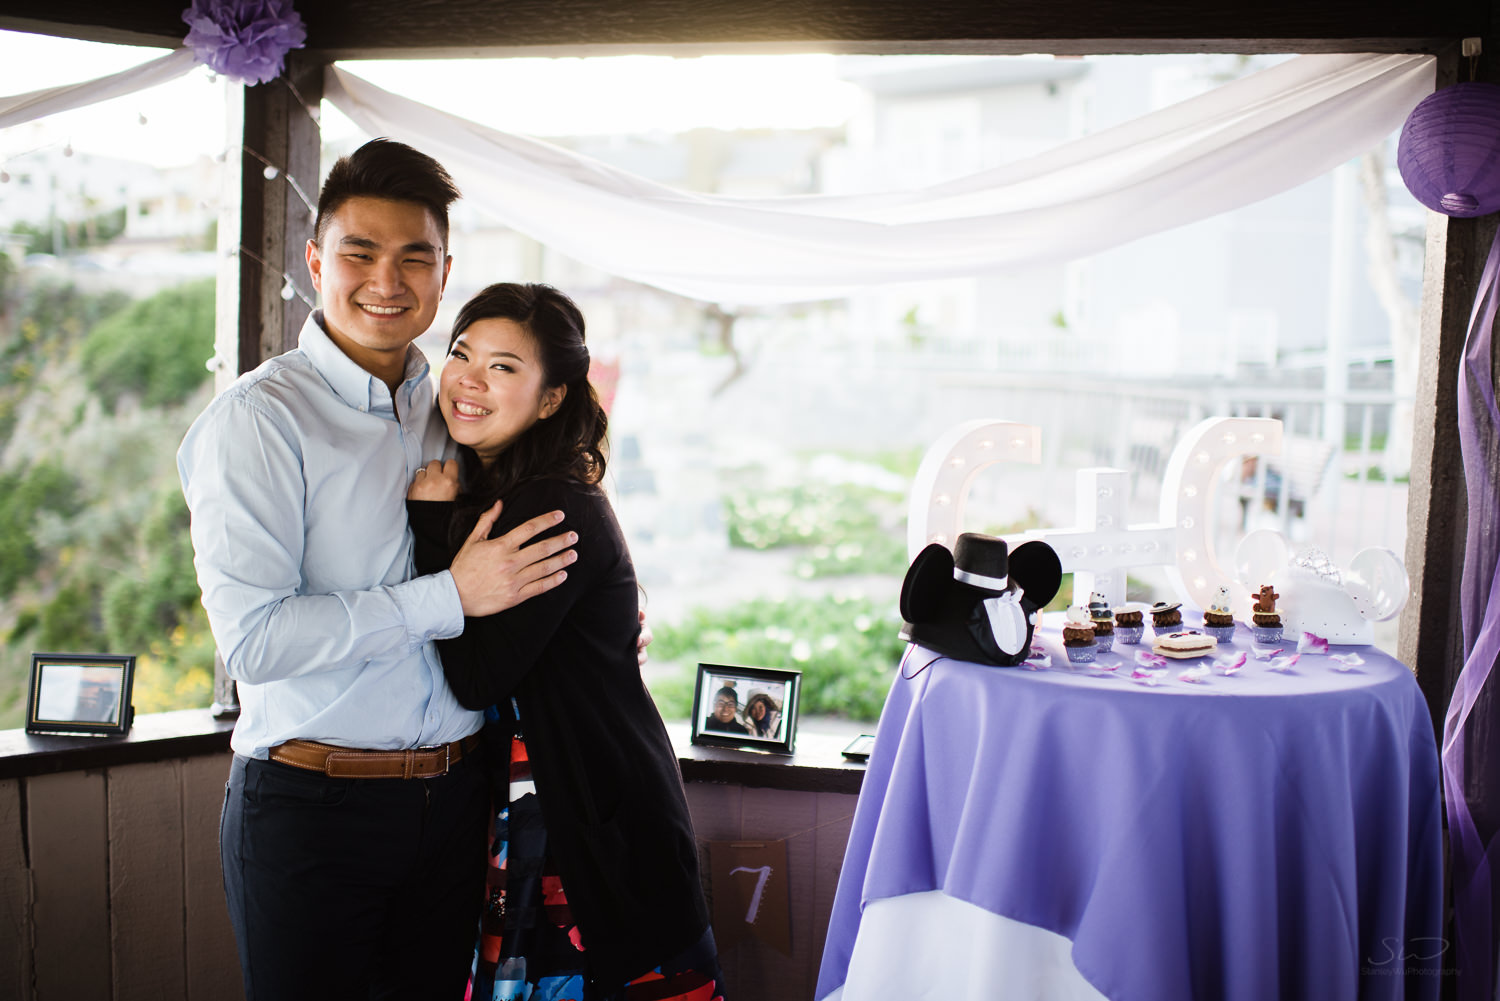 Cliffside proposal & engagement in Dana Point | Stanley Wu Photography Portrait & Wedding Photographer | Los Angeles, Orange County, Southern California